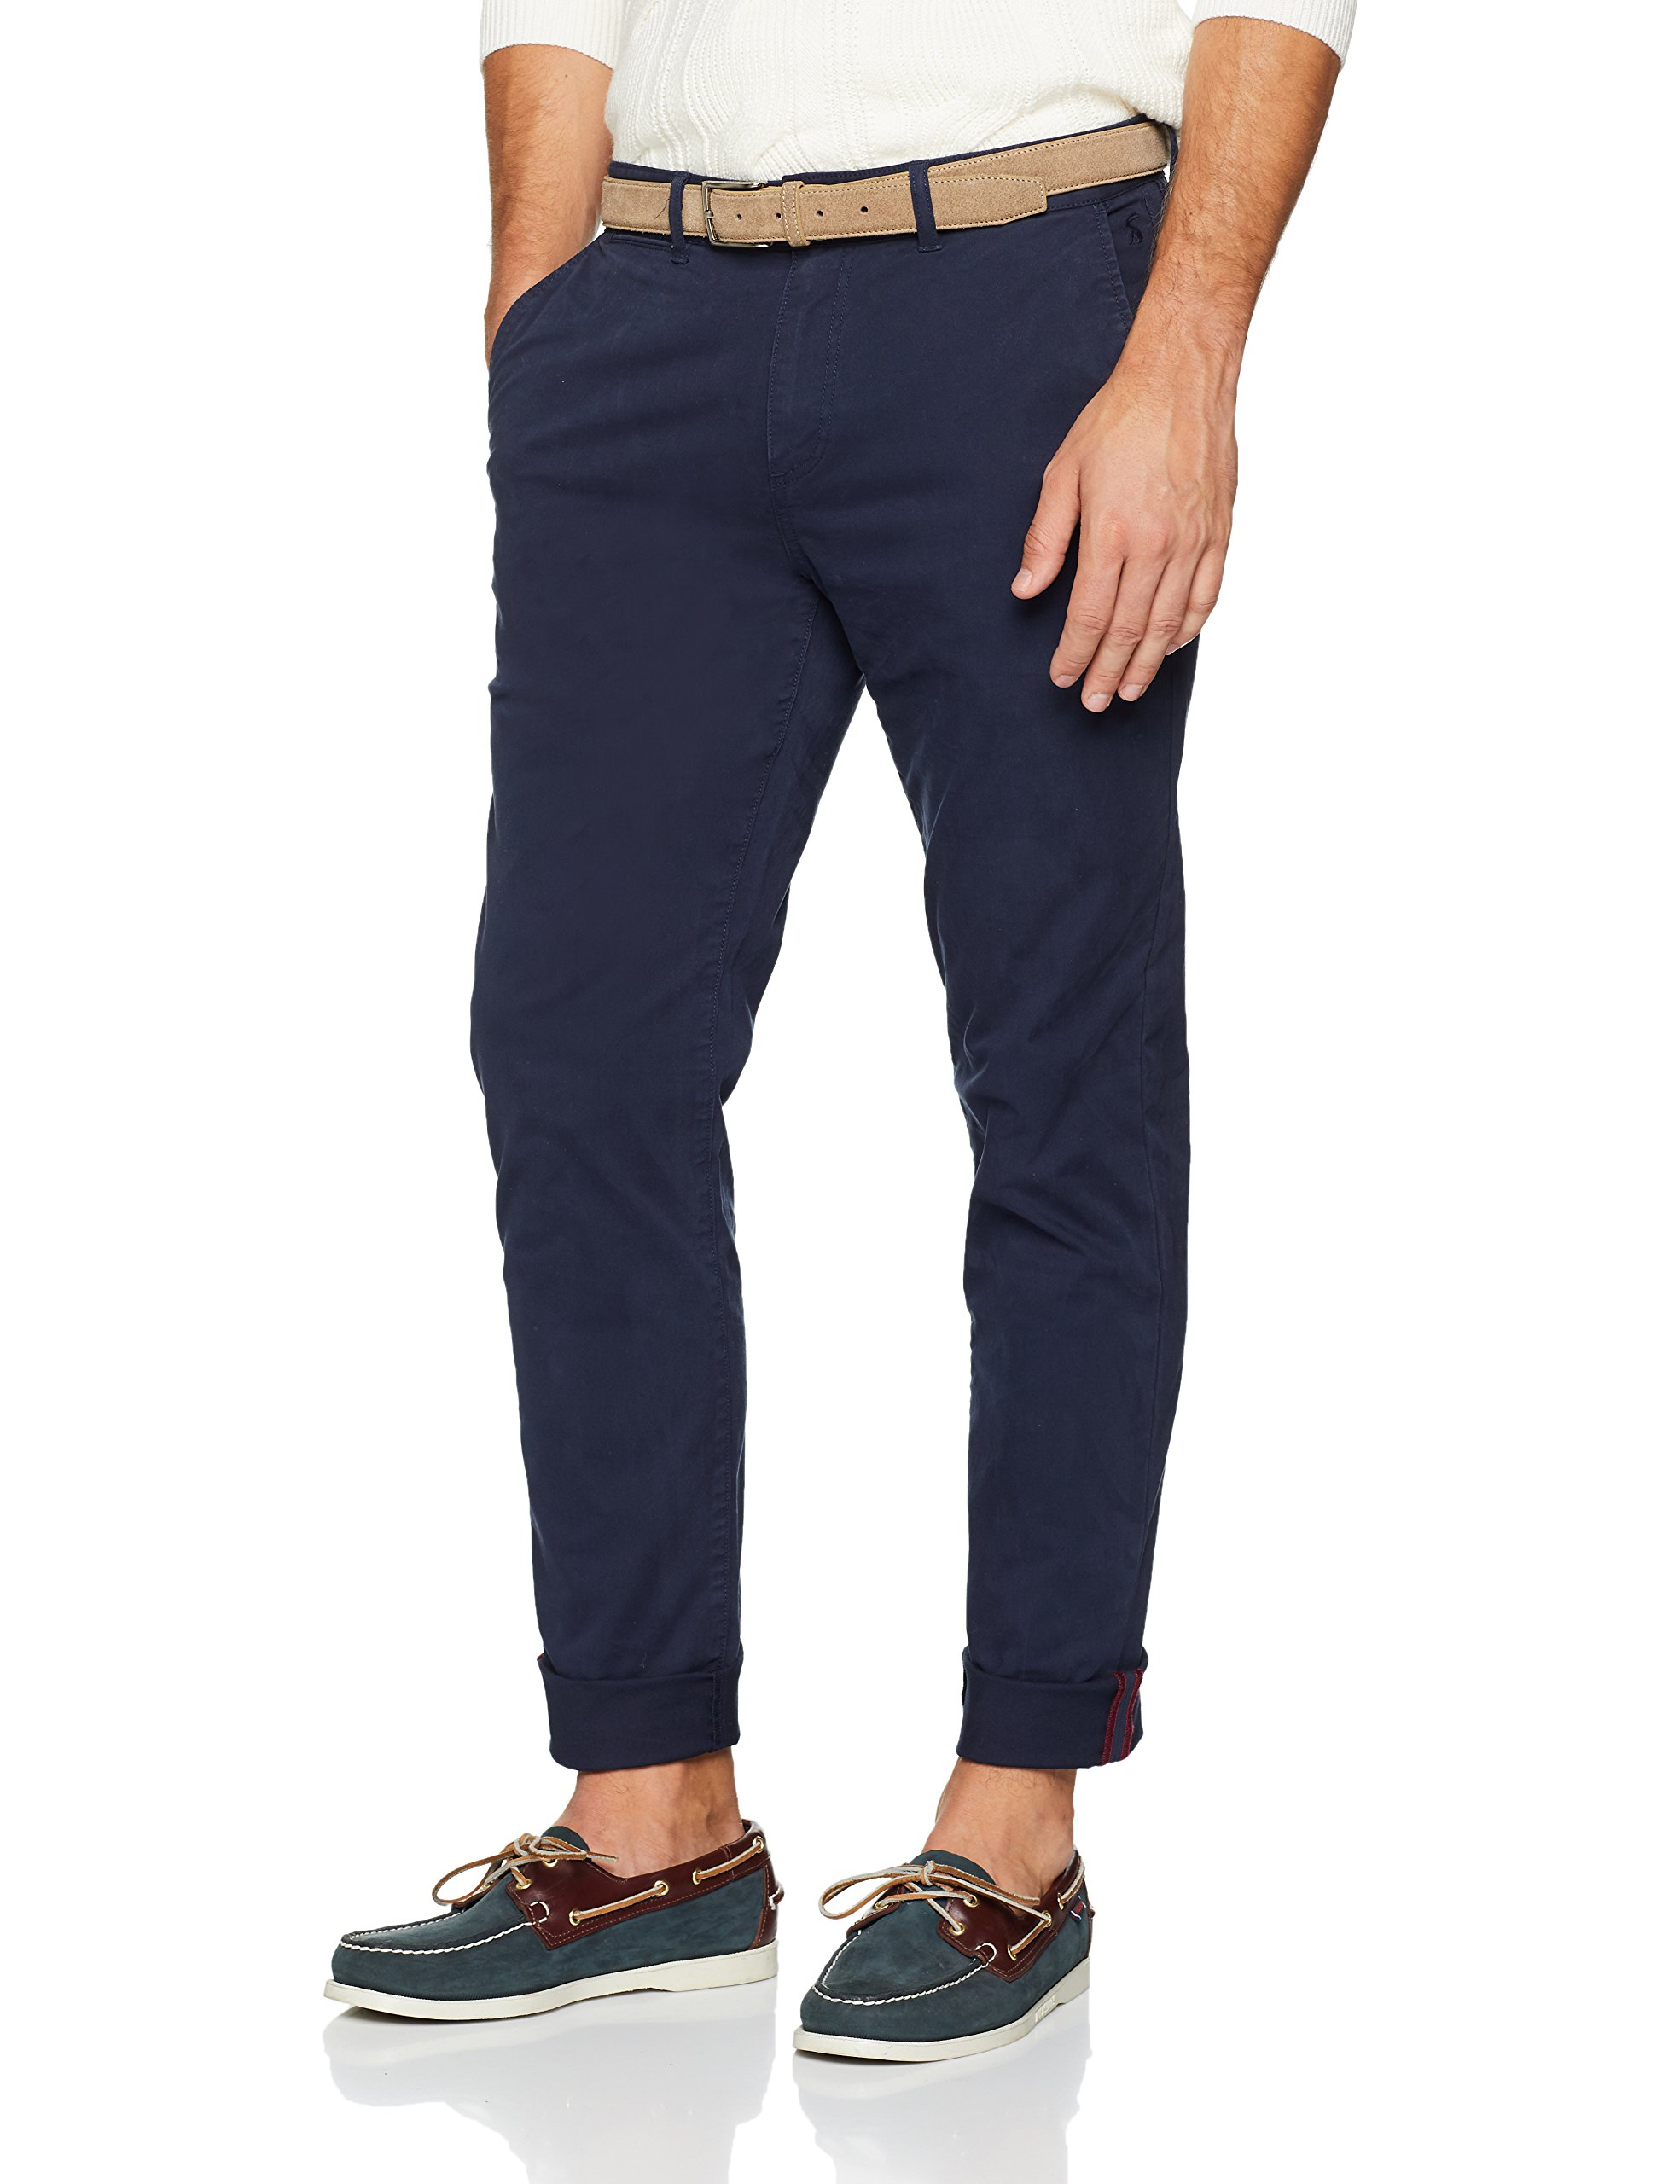 34Homme Joules Laundered French l34taille Chino Fabricant32 NavyW32 PantalonBleufrnavy EI9DH2